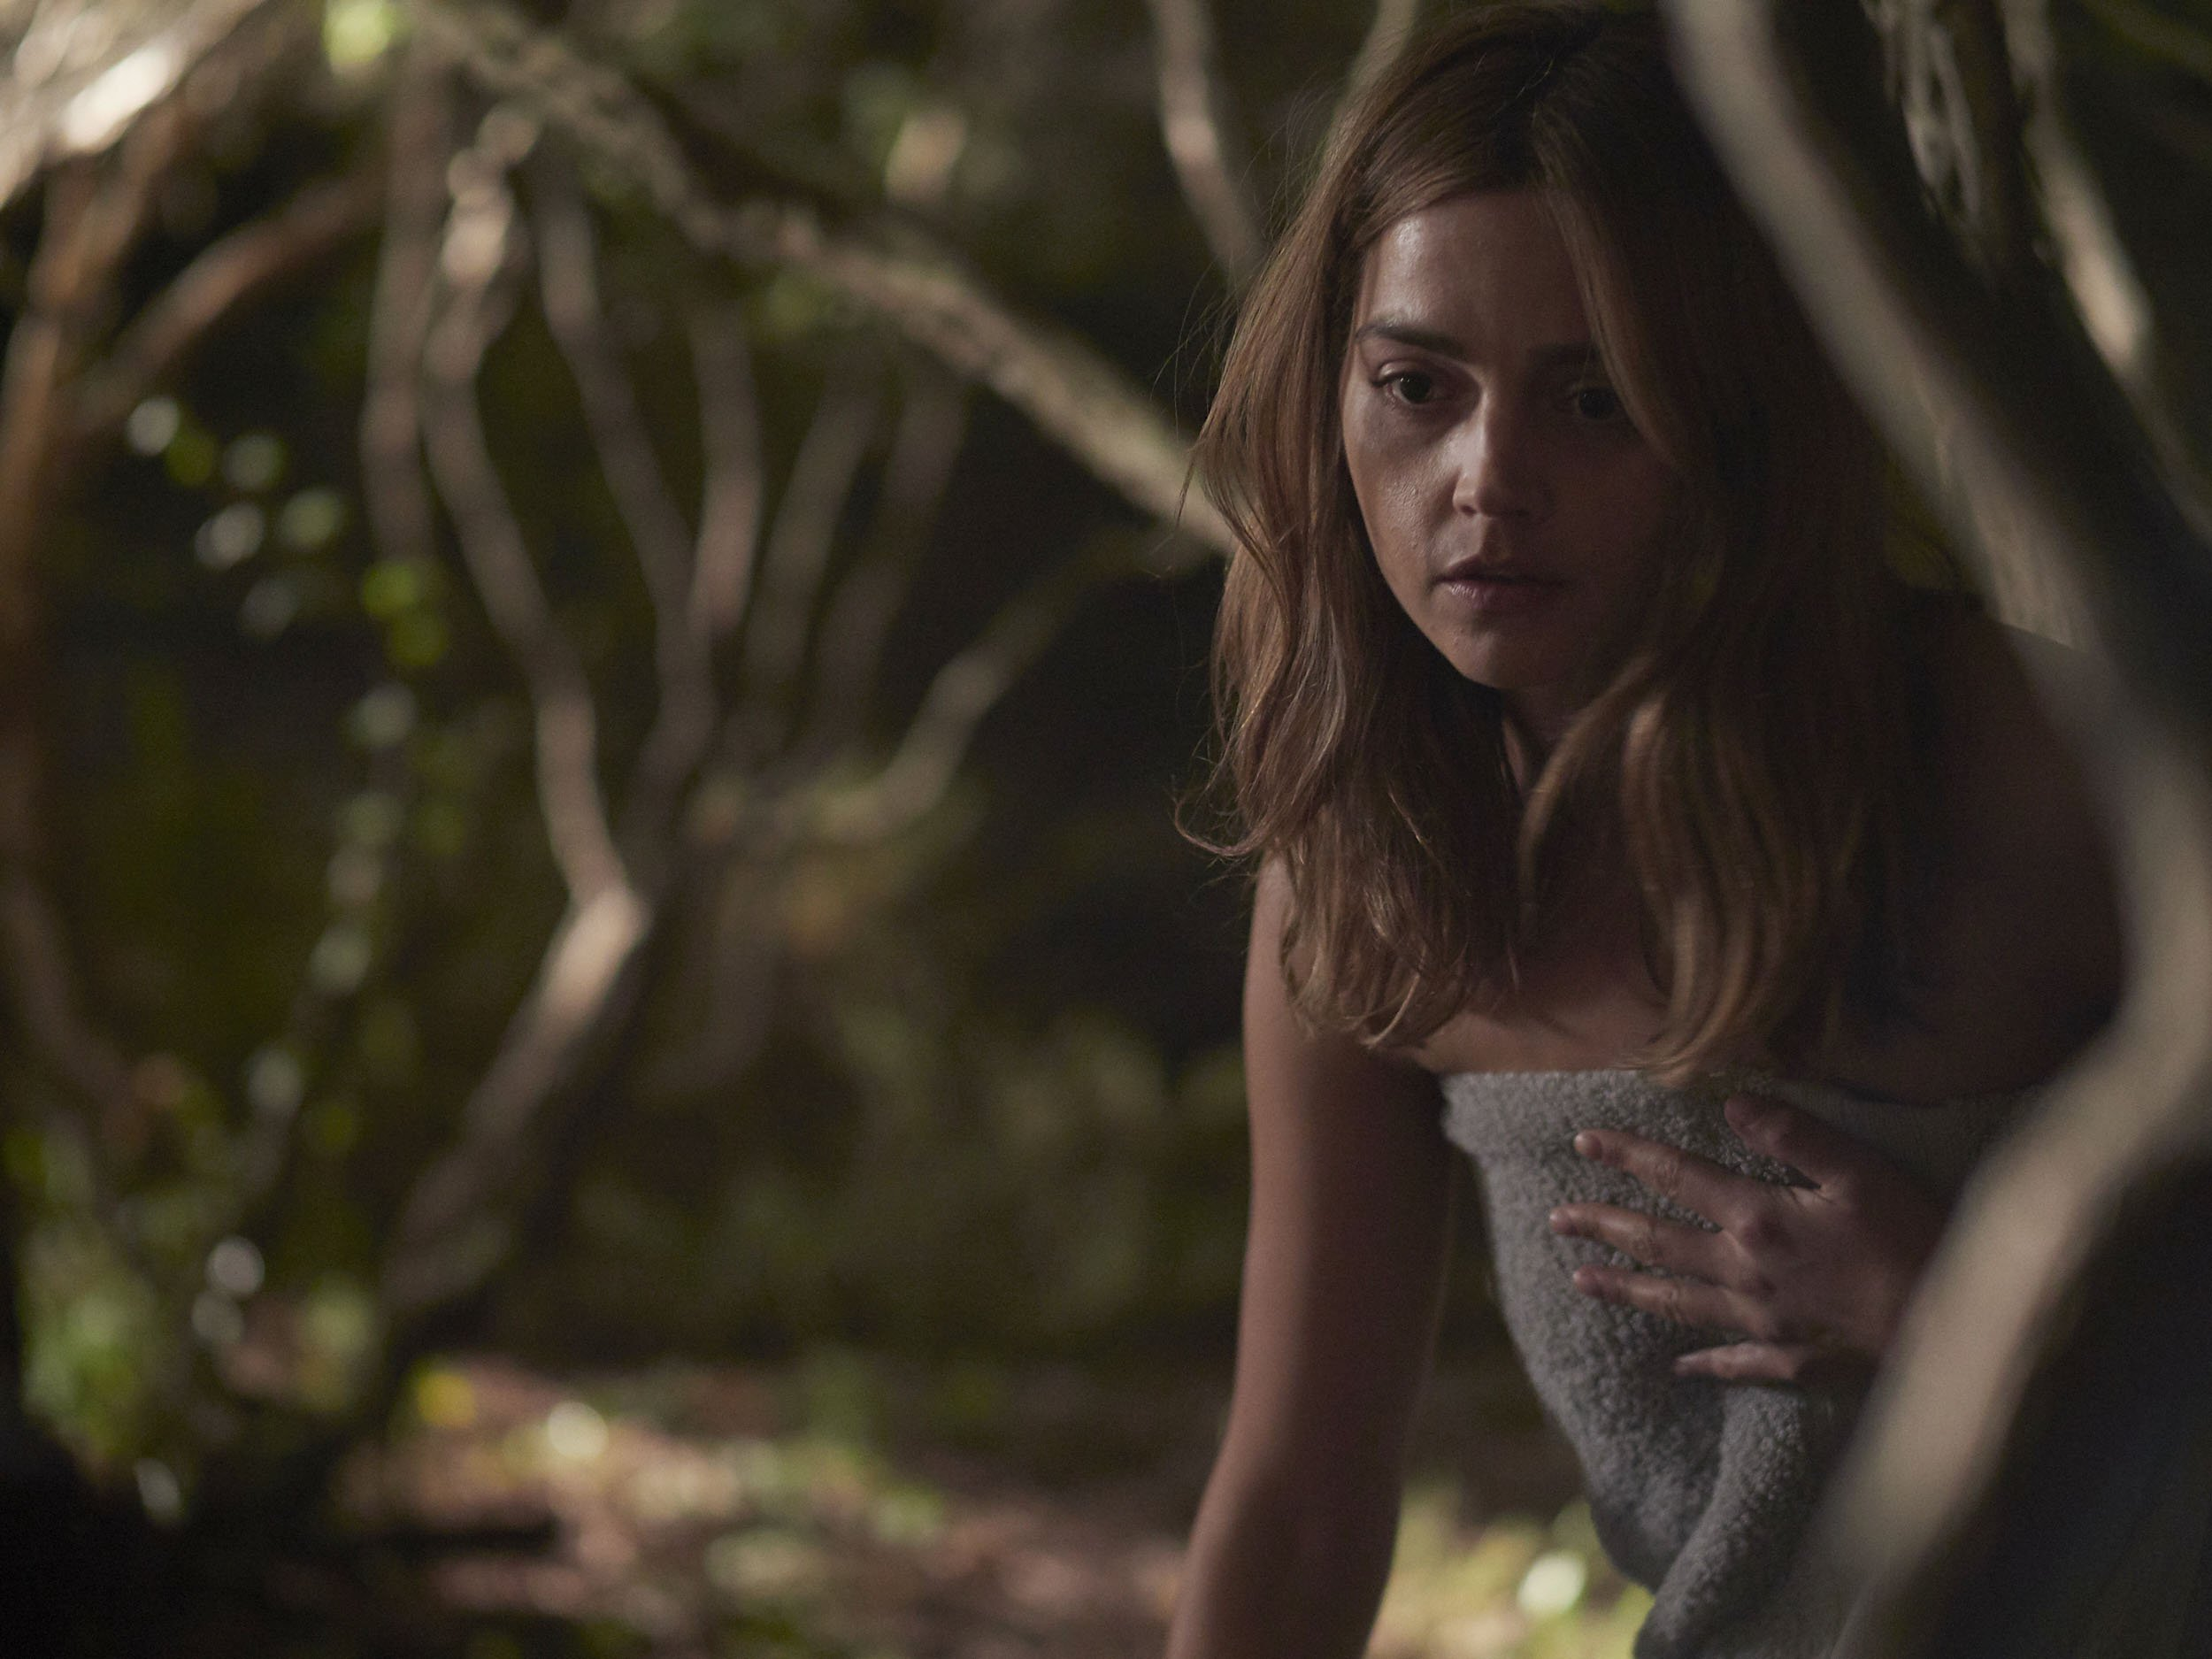 The Cry episode 4: Heartbreaking final twist ensures Jenna Coleman drama goes out with a bang